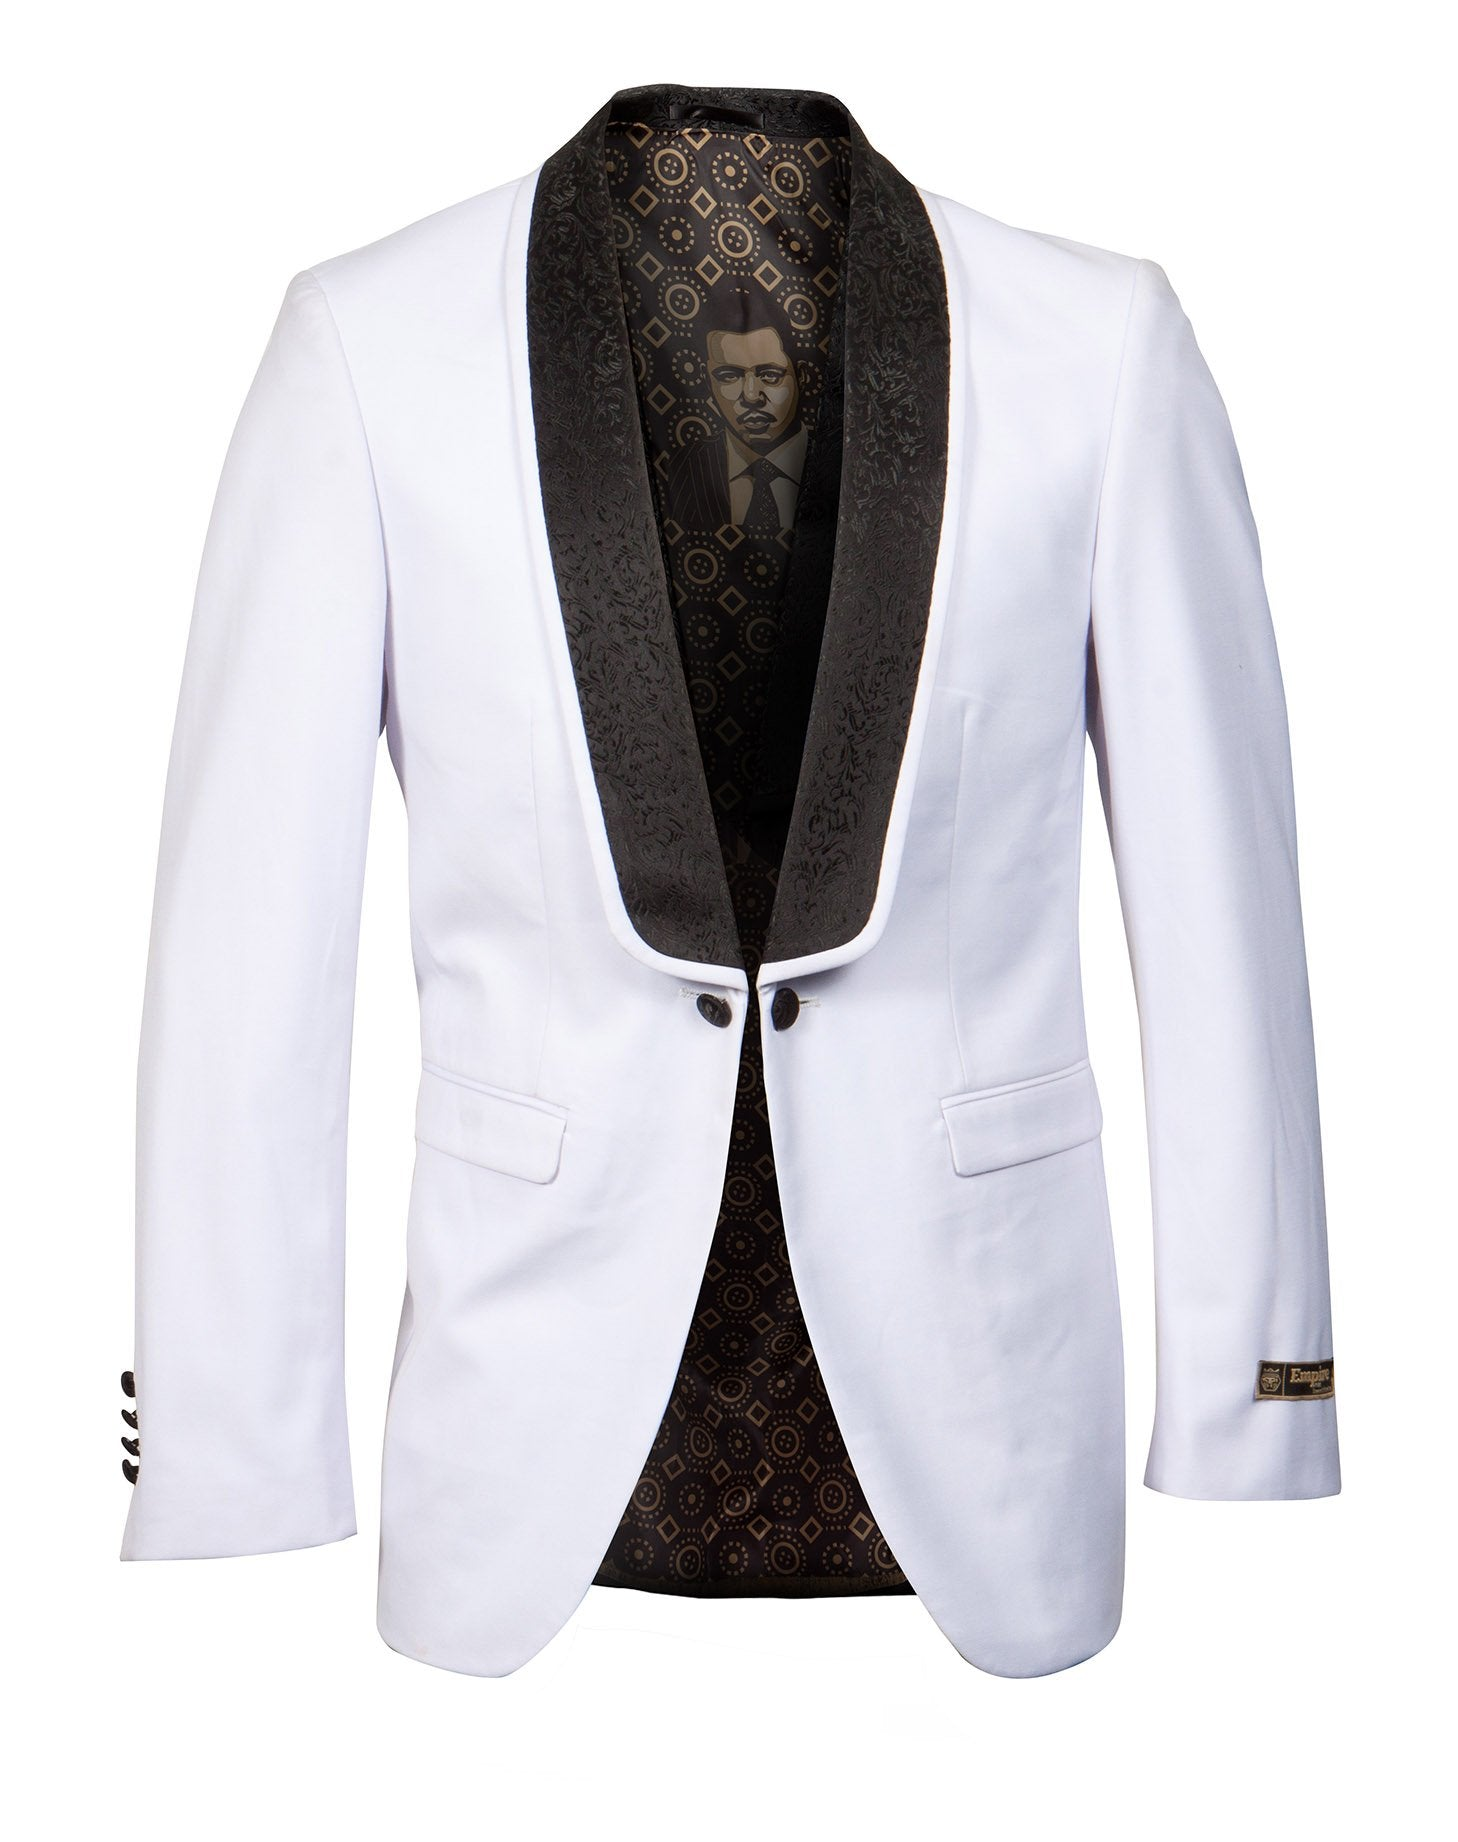 Empire Shawl Collar Hybrid/Slim Fit Blazer Jacket ME268H